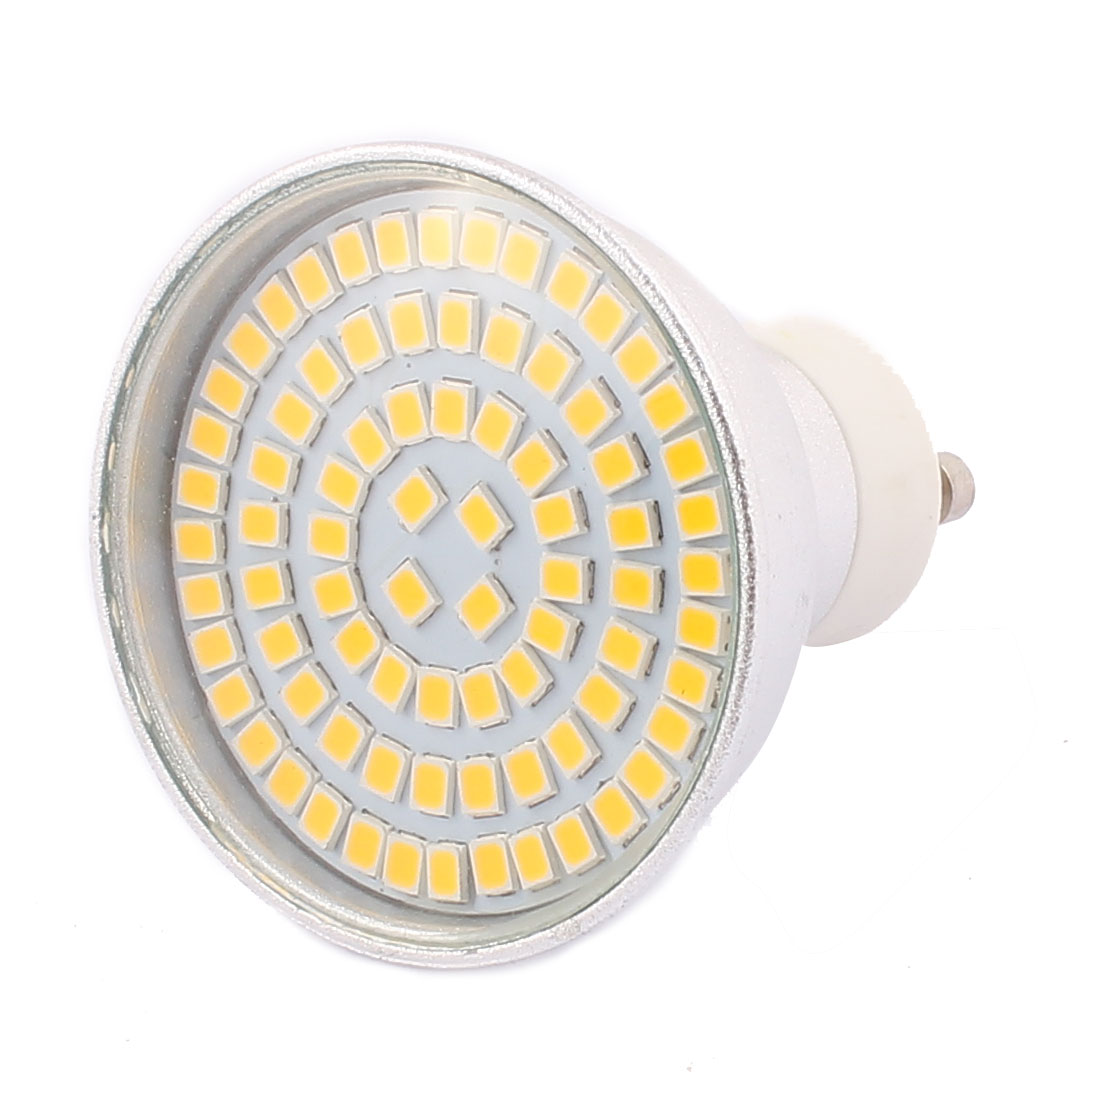 GU10 AC 220V 8W SMD 2835 80 LEDs Aluminum Energy Saving LED Lamp Bulb Warm White